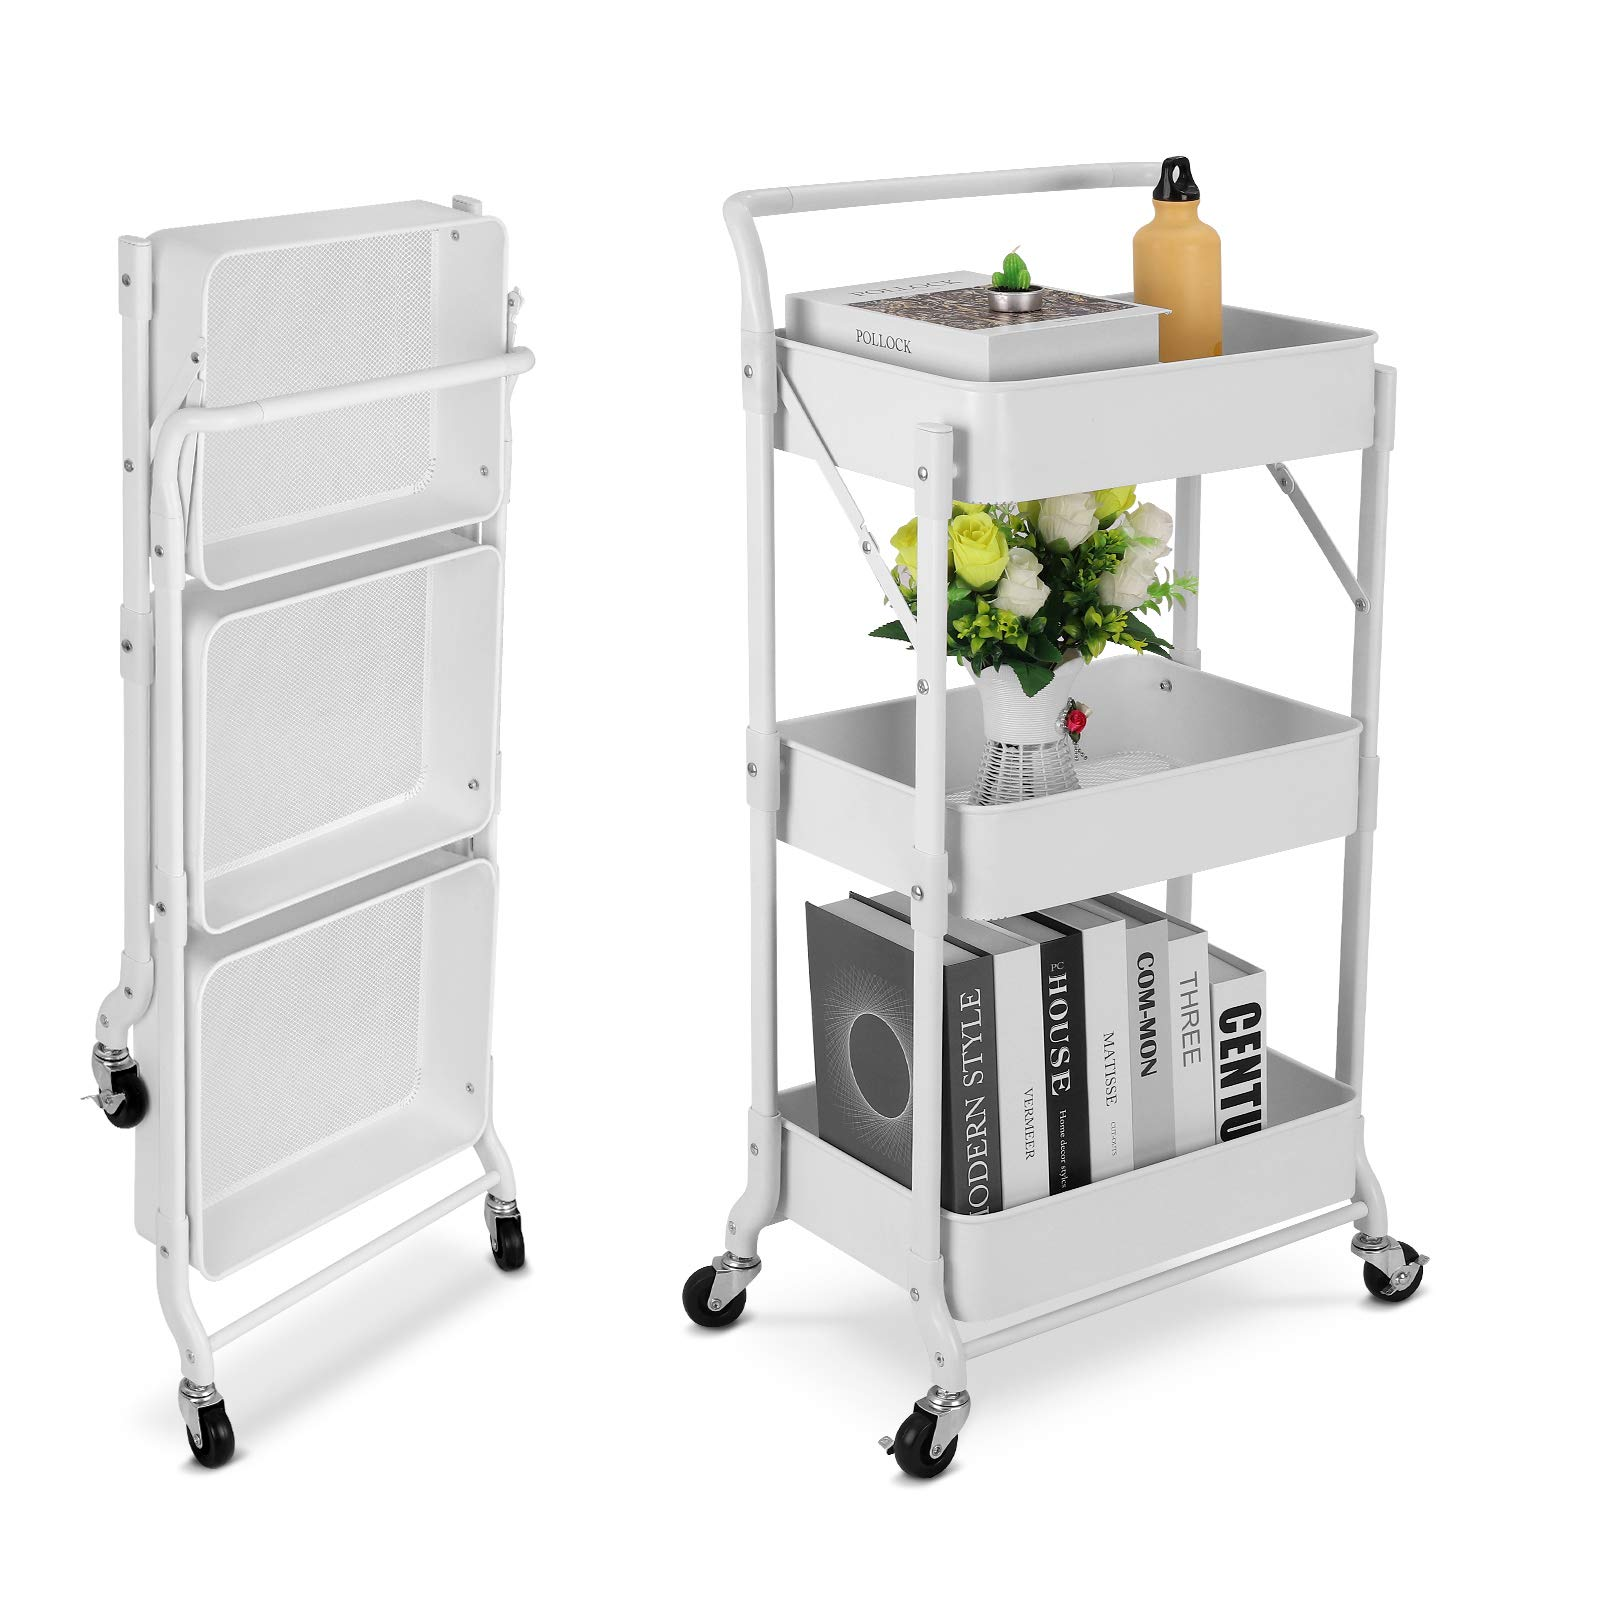 johgee Foldable 3 Tier Metal Utility Rolling Cart, Easy Assembly 100% Carbon Metal Design Folding Mobile Multi-Function Storage Organizer Cart for Home, Office, Outdoor (Foldable-White)